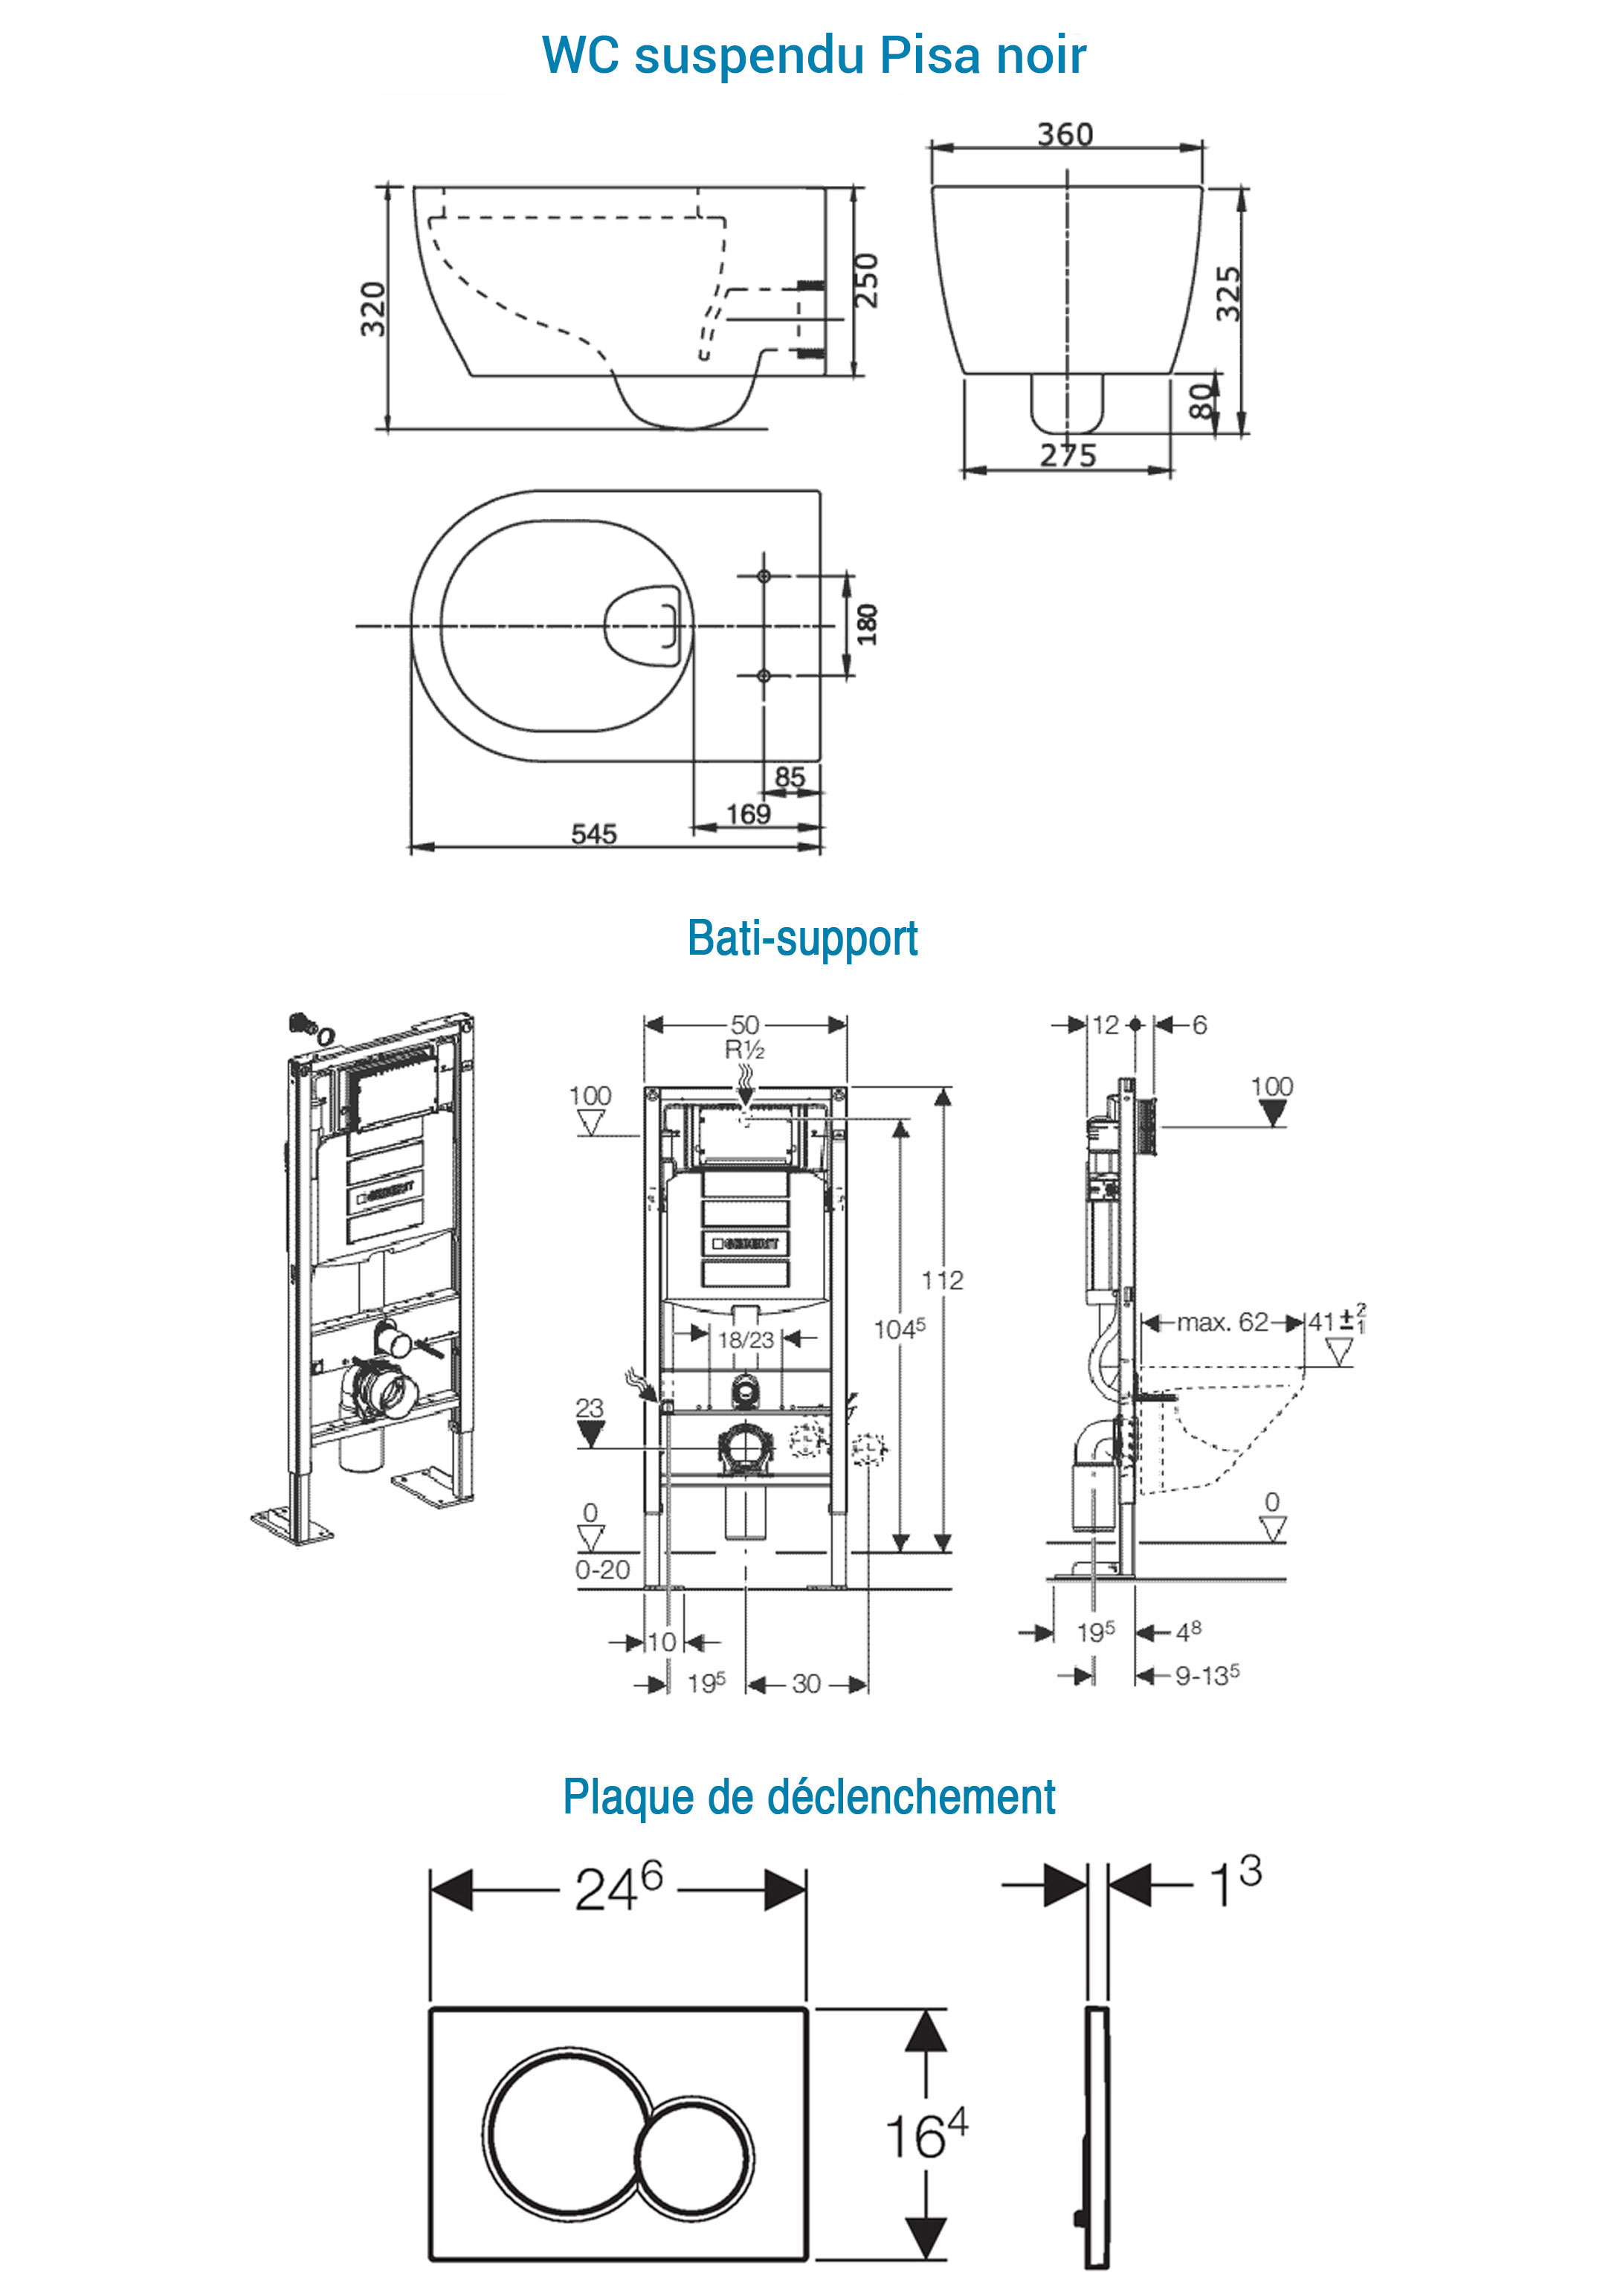 TECHNICAL DRAWING schéma pack WC pisa